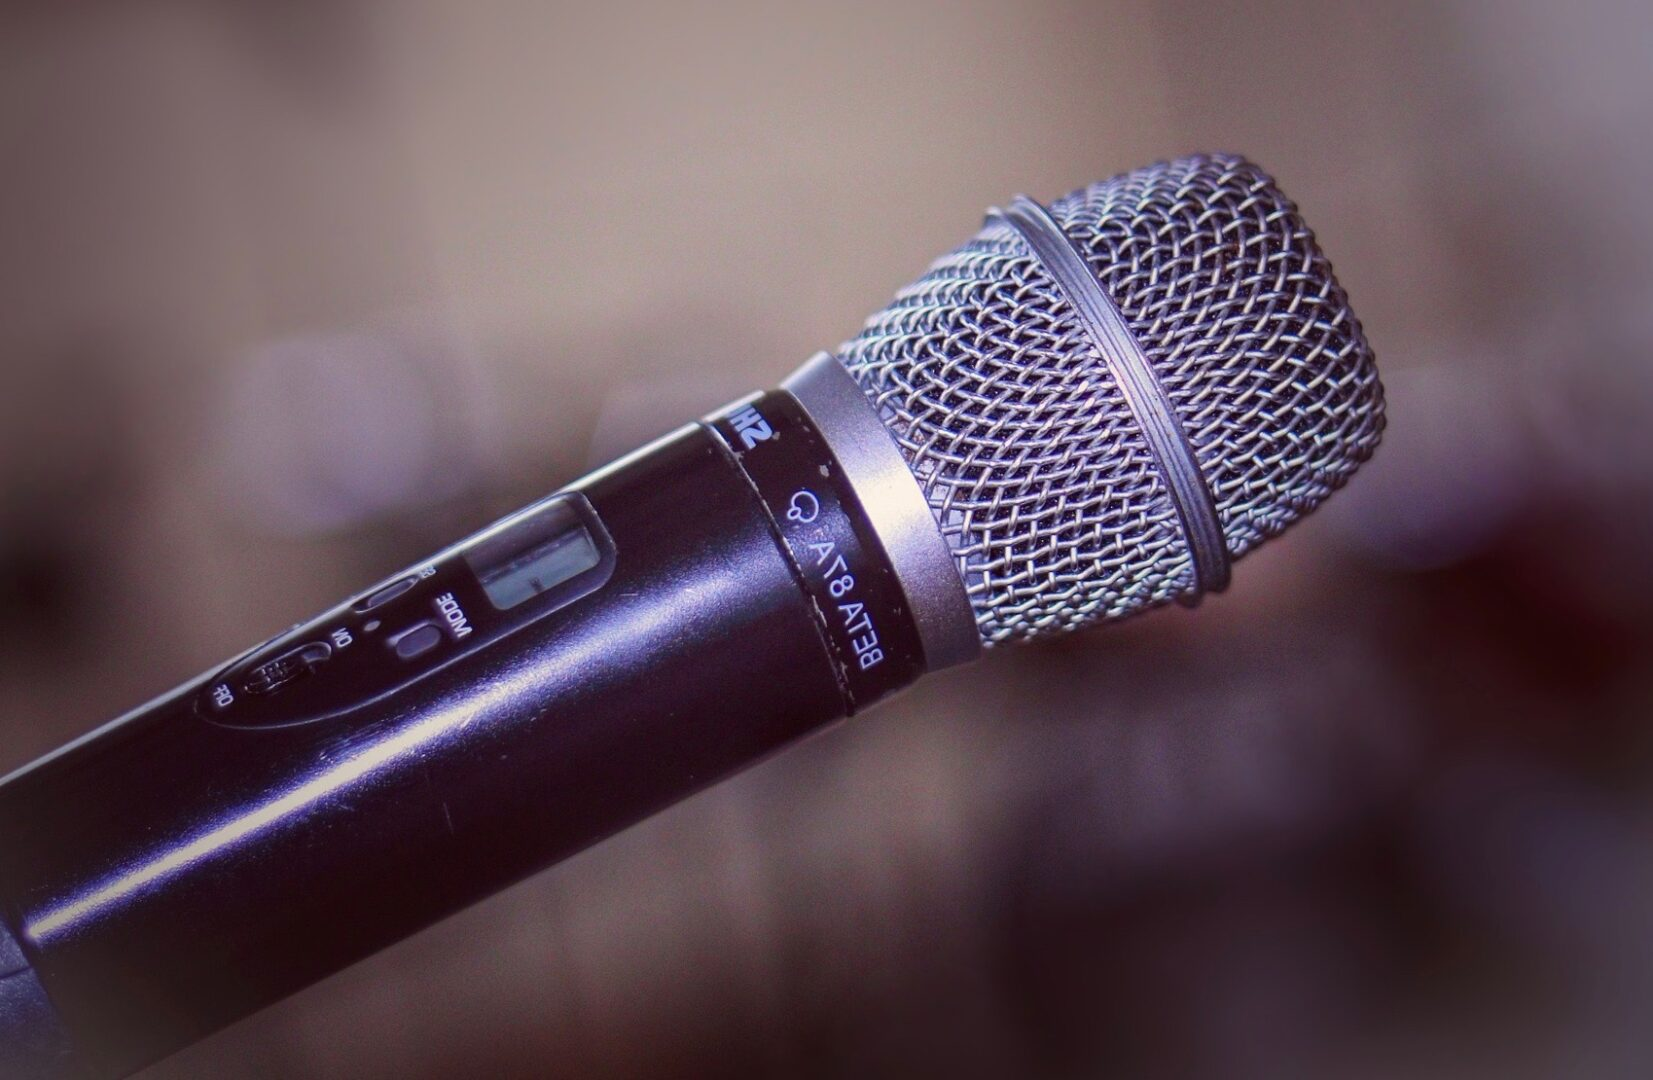 microphone-Home Page-4423282_1920 2